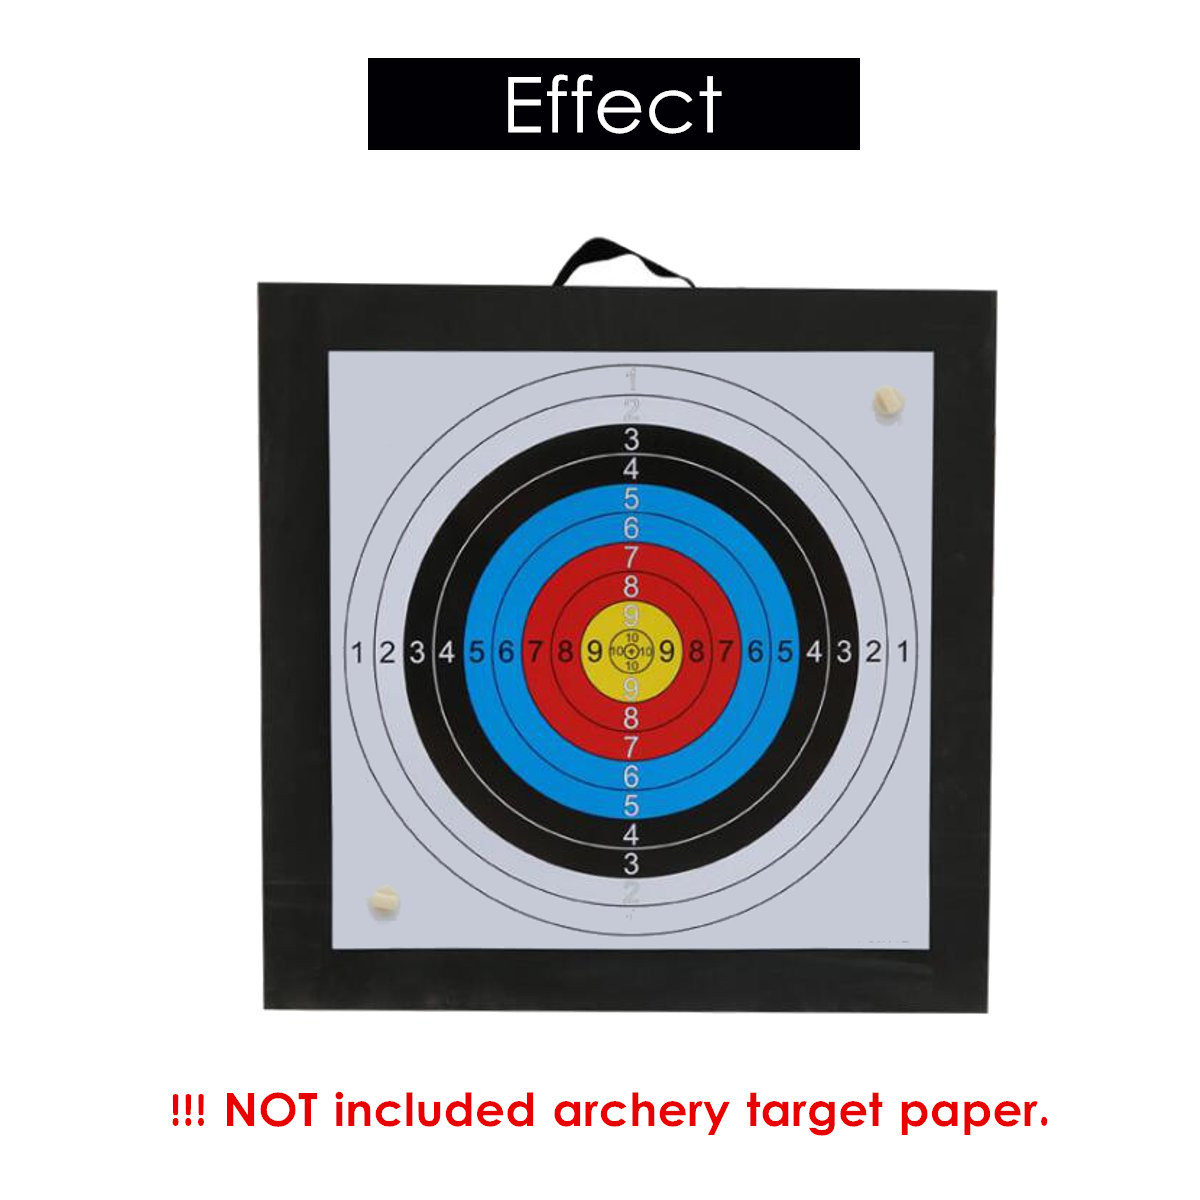 Foam Layered Target with Polyfusion Technology Eva Archery Target Shooting Eva Arrow Target Archery Self-Healing EVE Target 50 x 50 x 6 cm Outdoor Target Arrow and Bow Fittings